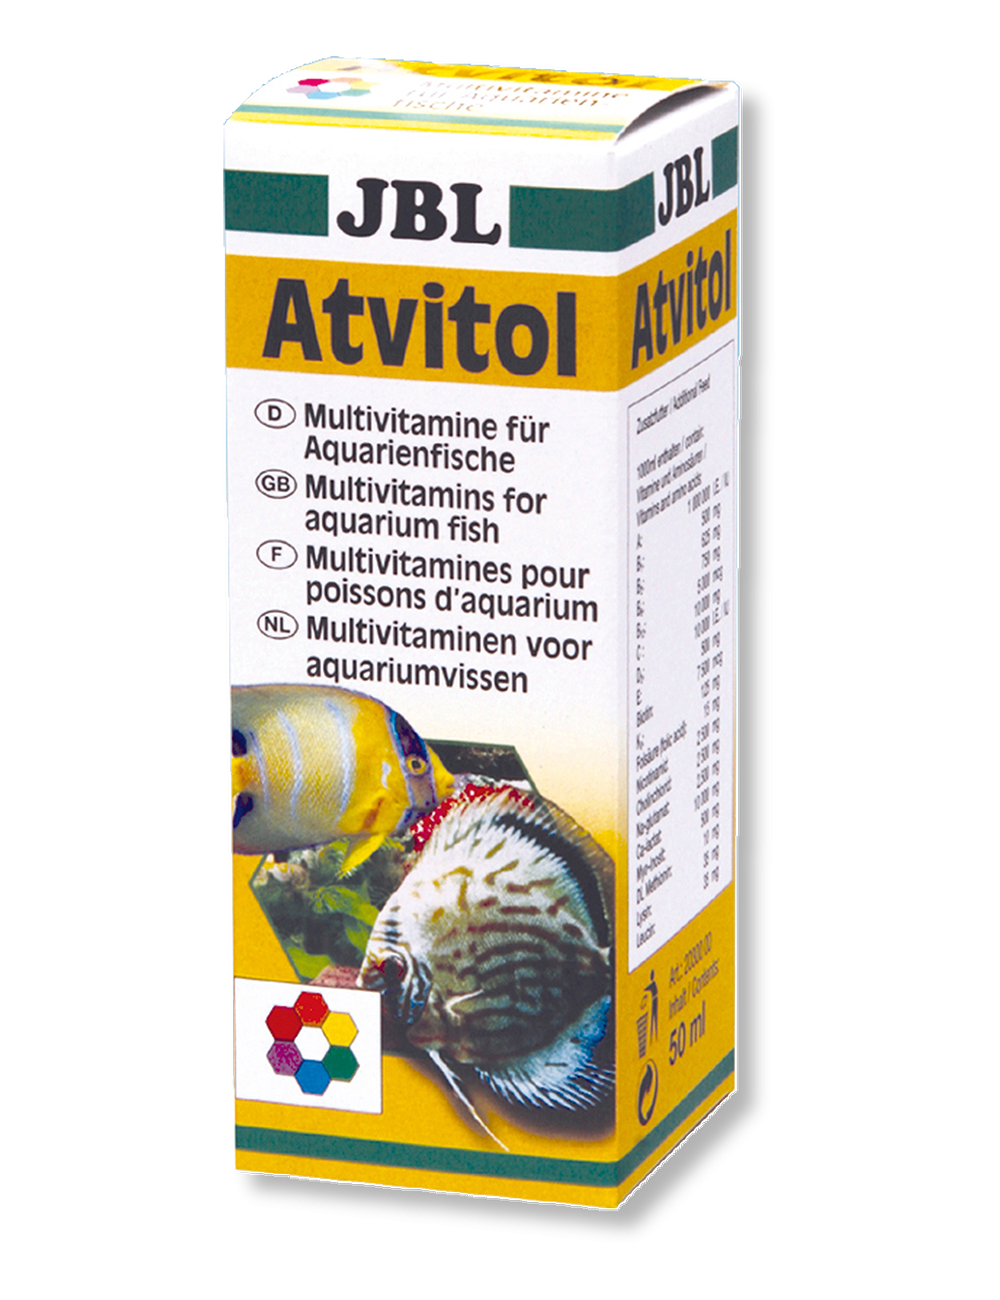 JBL - Atvitol - Multivitamines - 50 ml